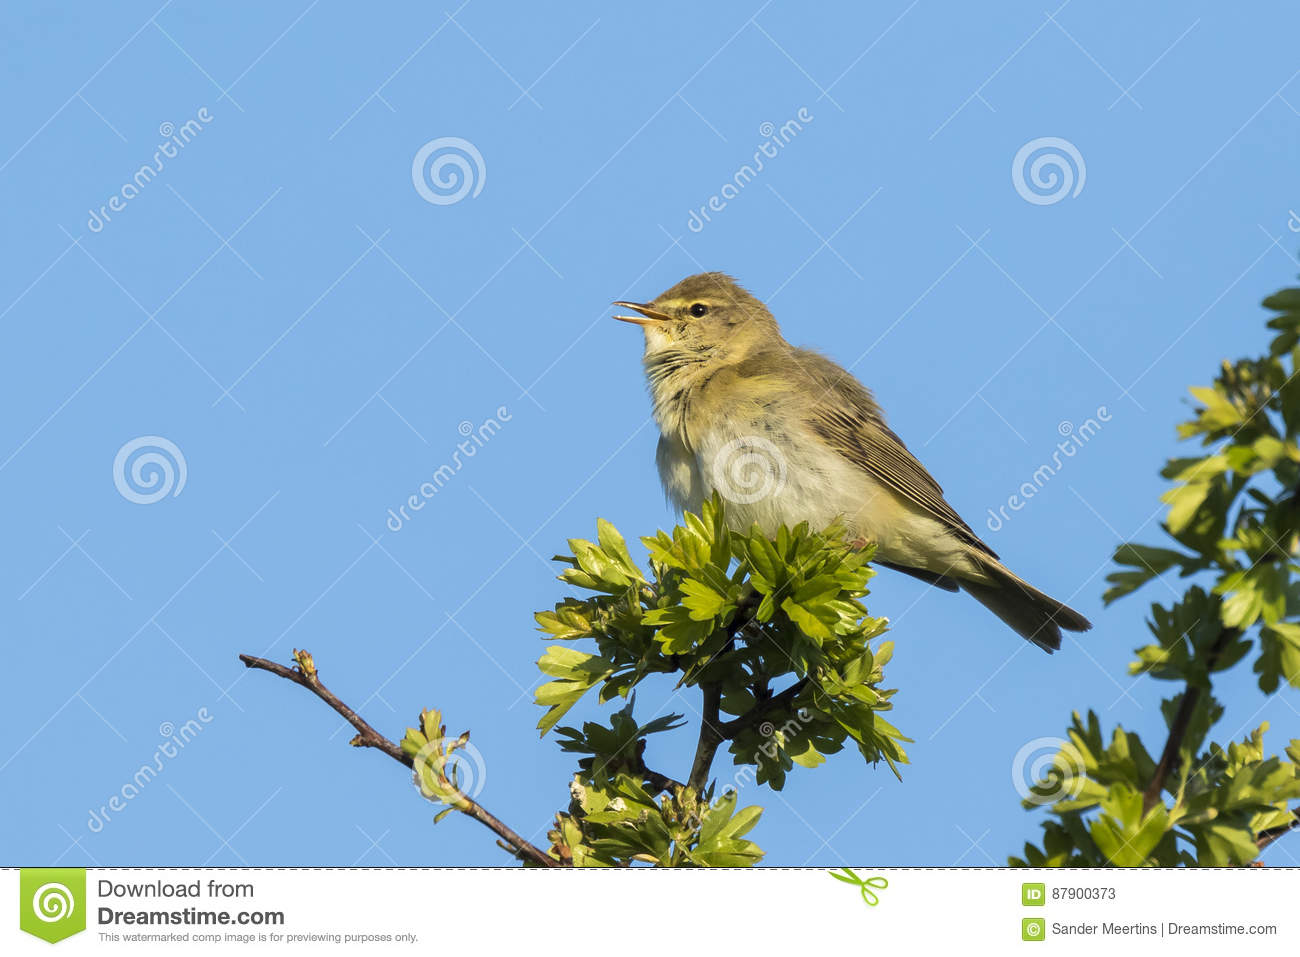 Willow Warbler clipart #7, Download drawings